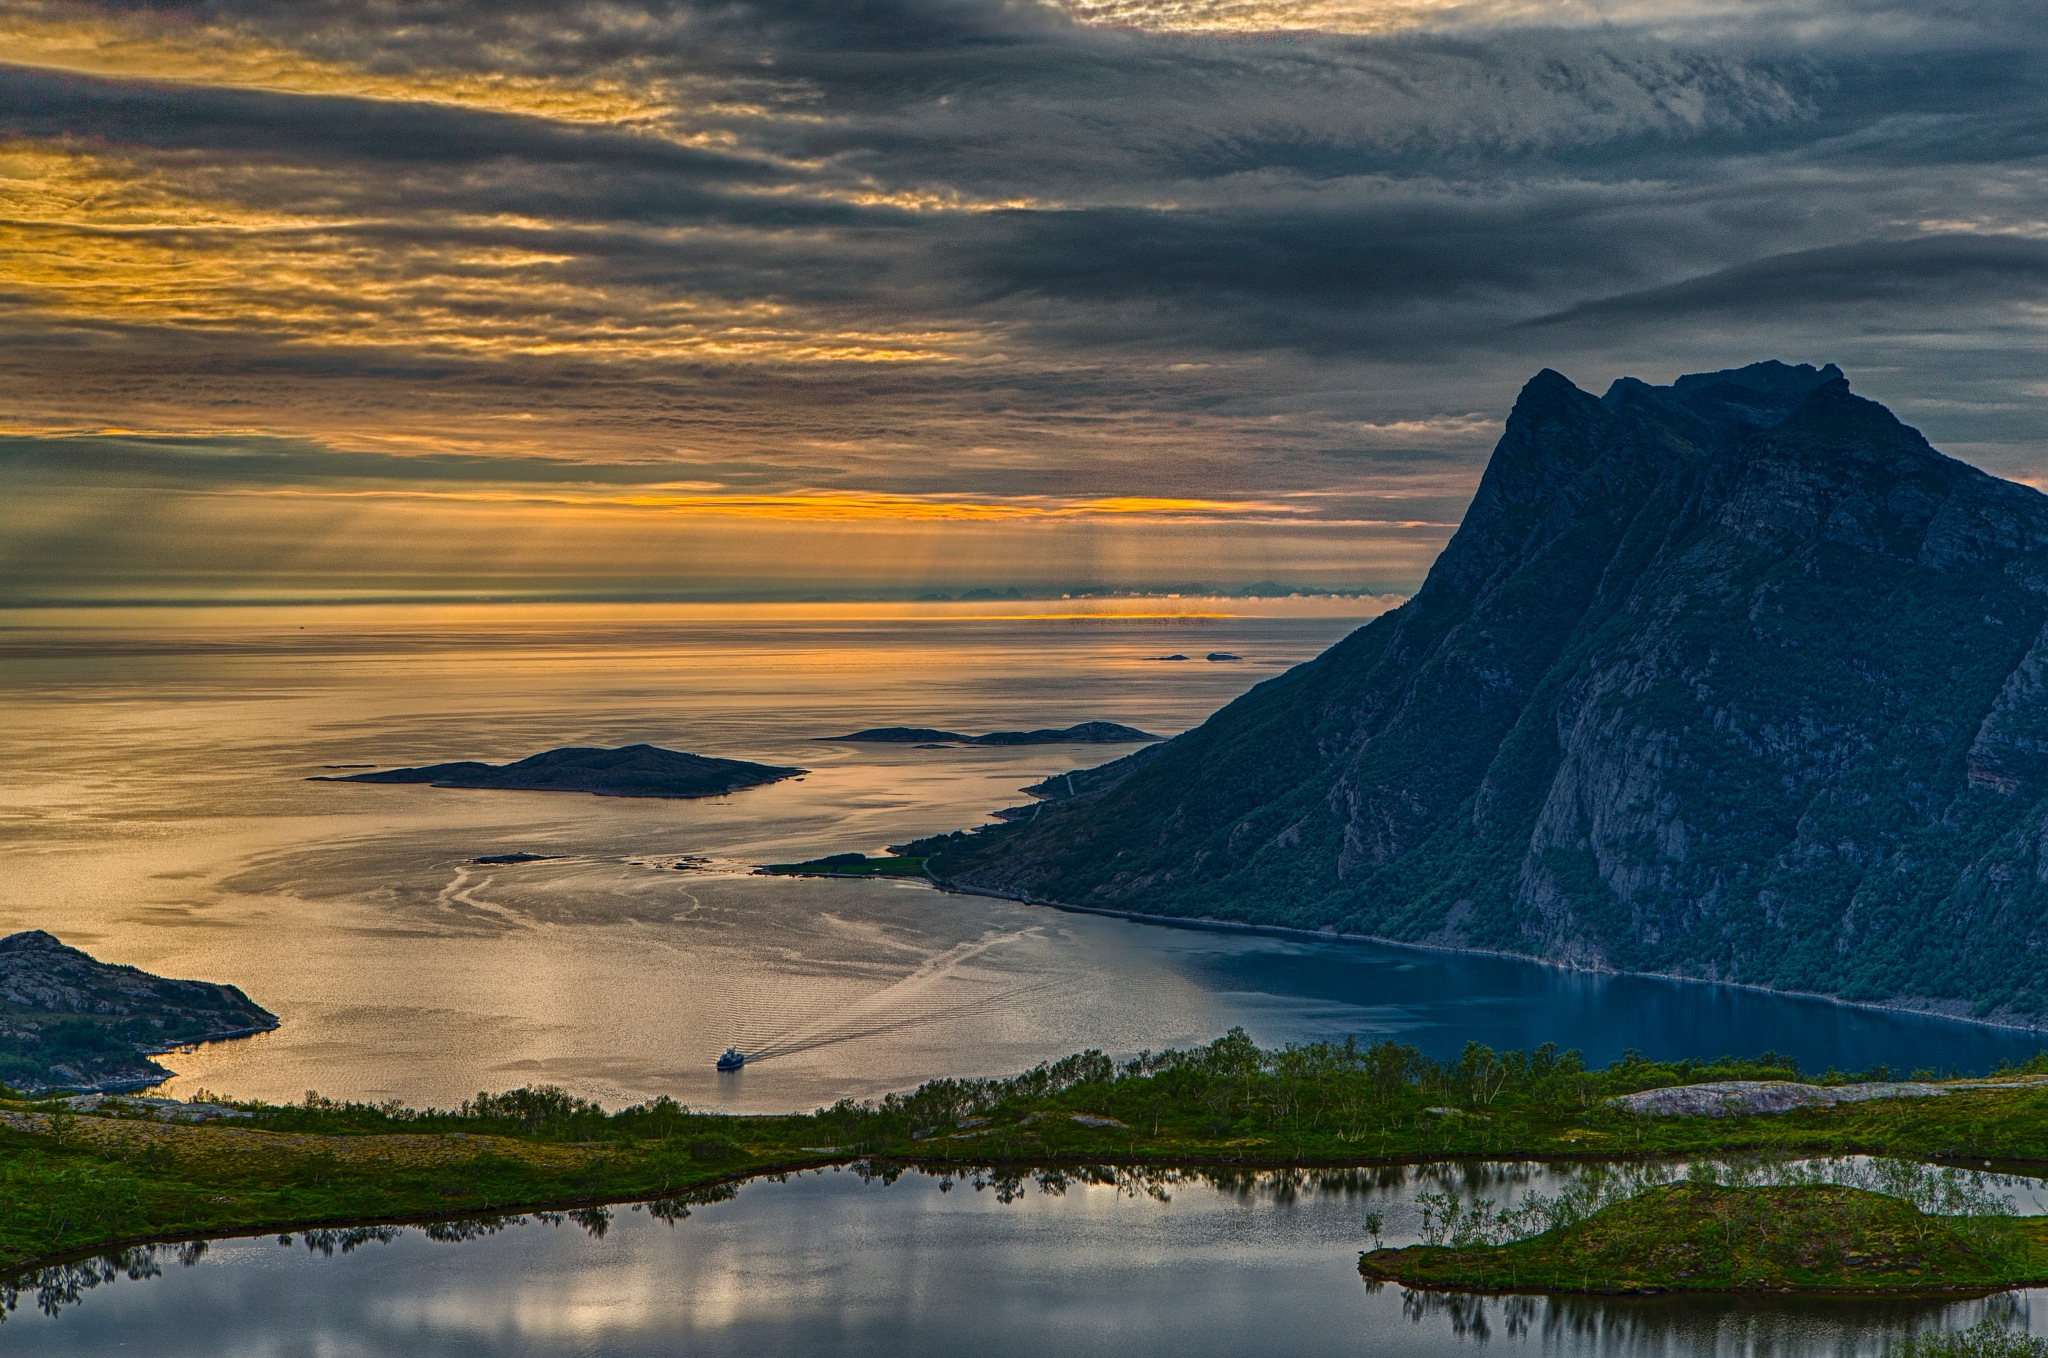 Sunset Kjerringøy ツ by Odd Rune Wang